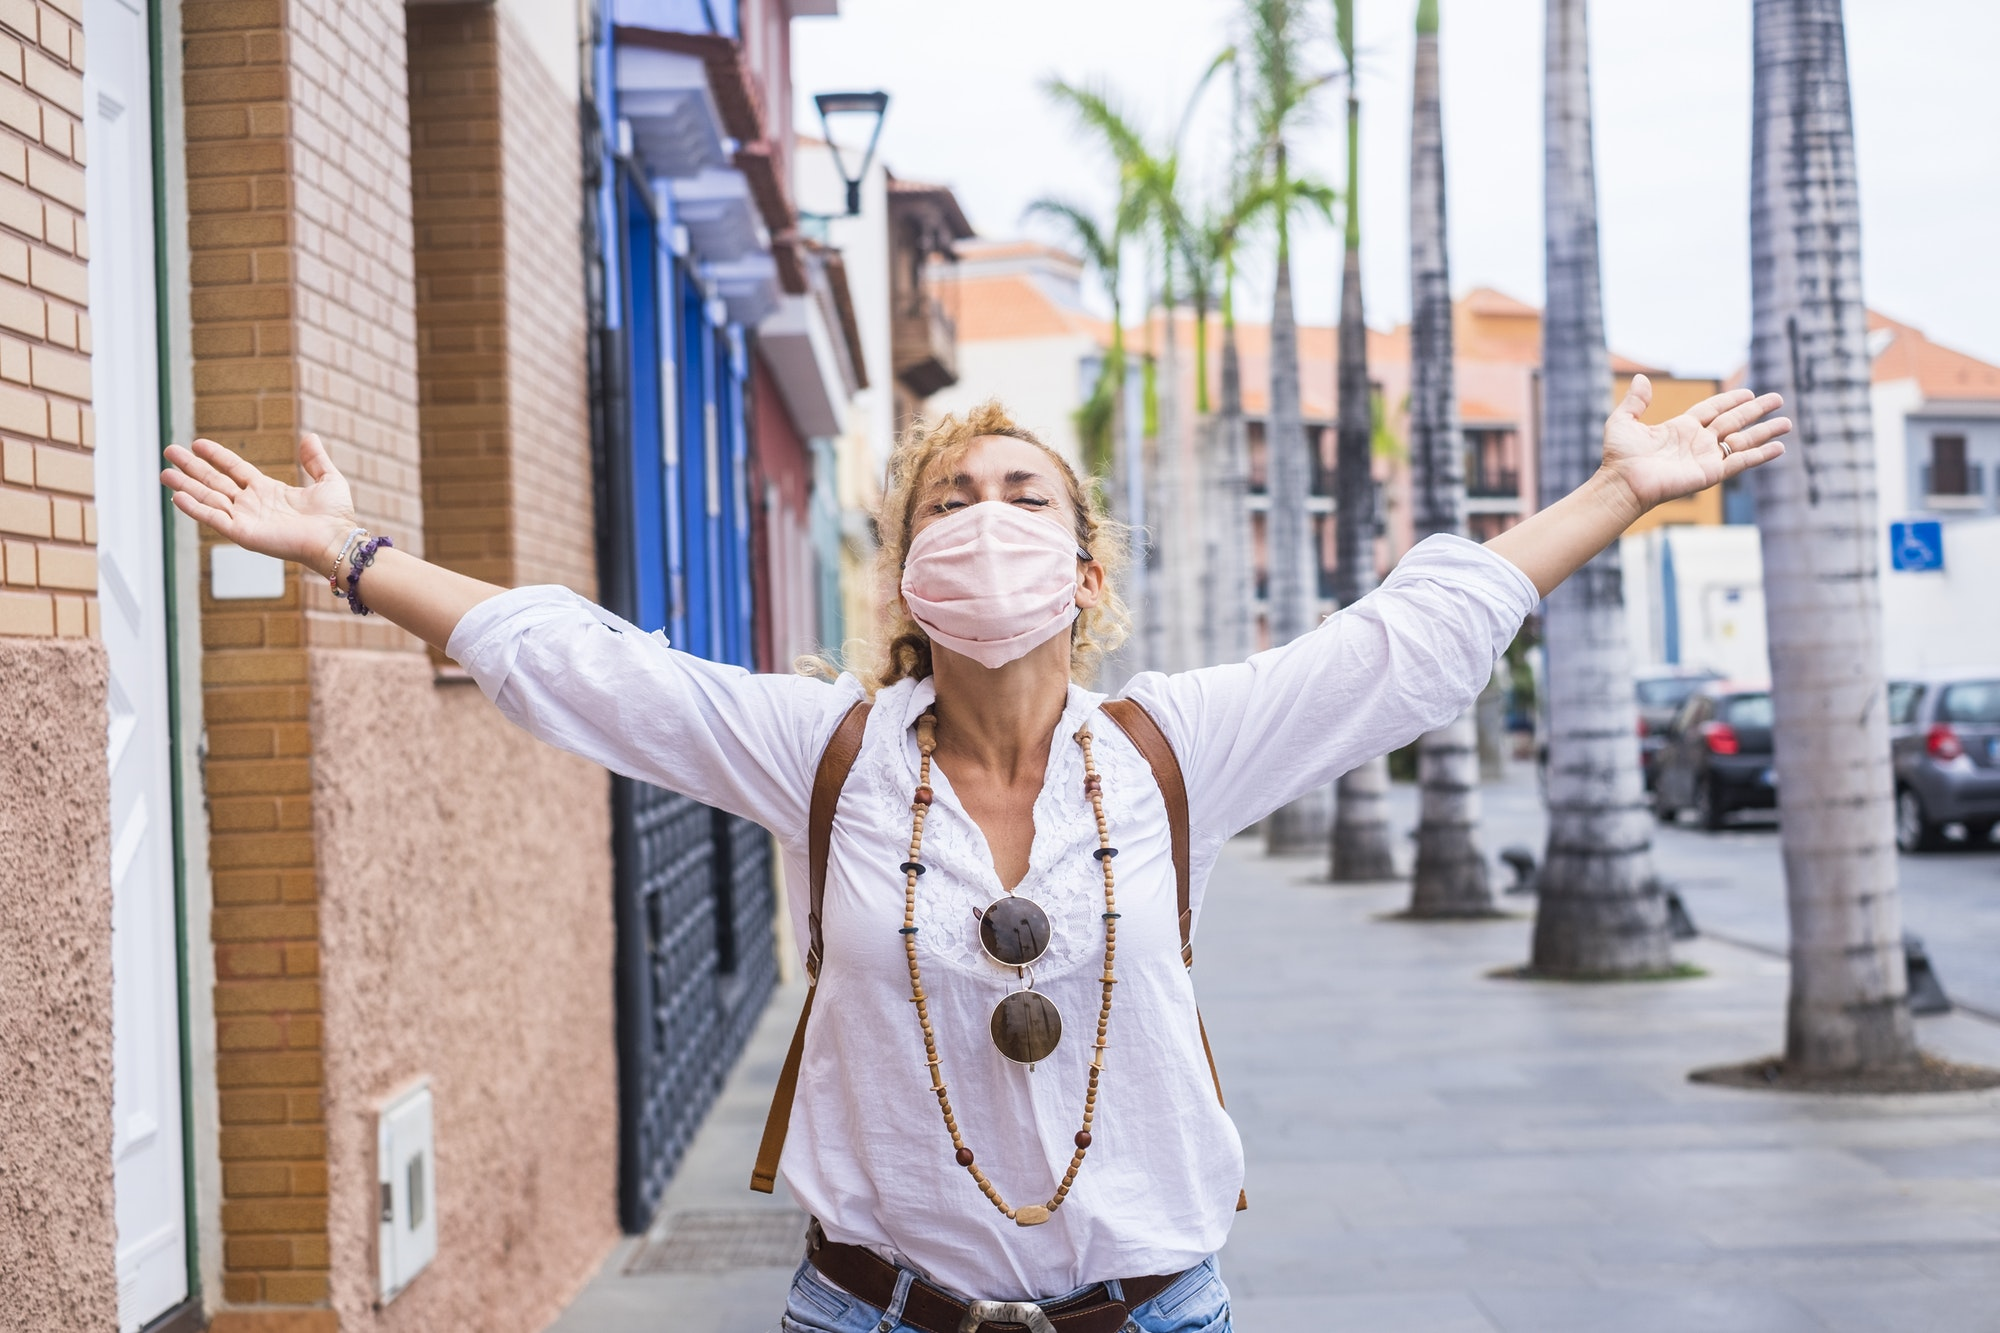 Happy woman celebrate the end of the pandemic emergency